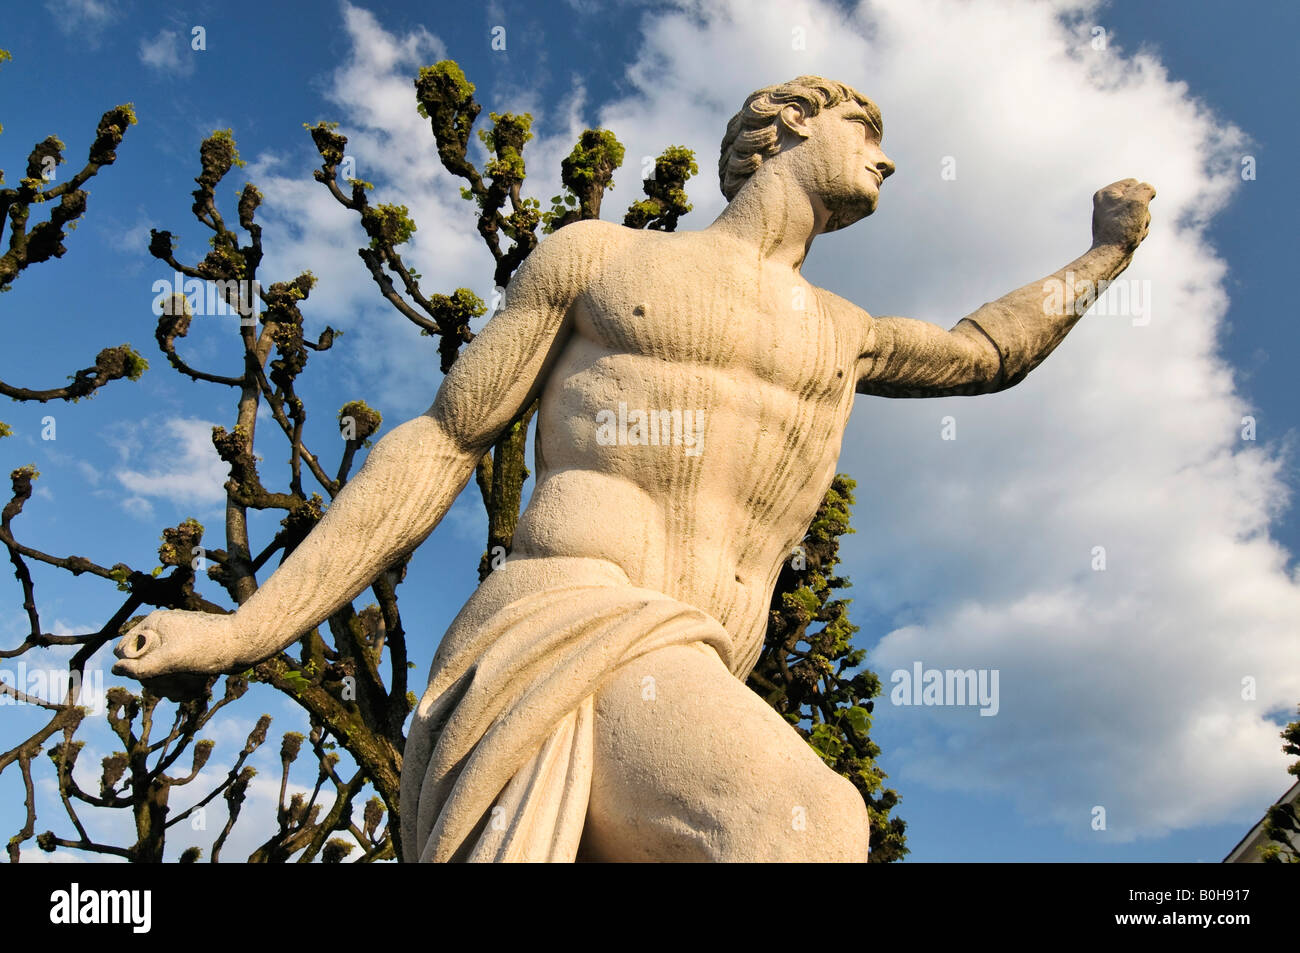 Sculpture by Ottavio Mosto, dated 1690, scene out of Greek mythology, Mirabellgarten Garden, Salzburg, Austria, - Stock Image